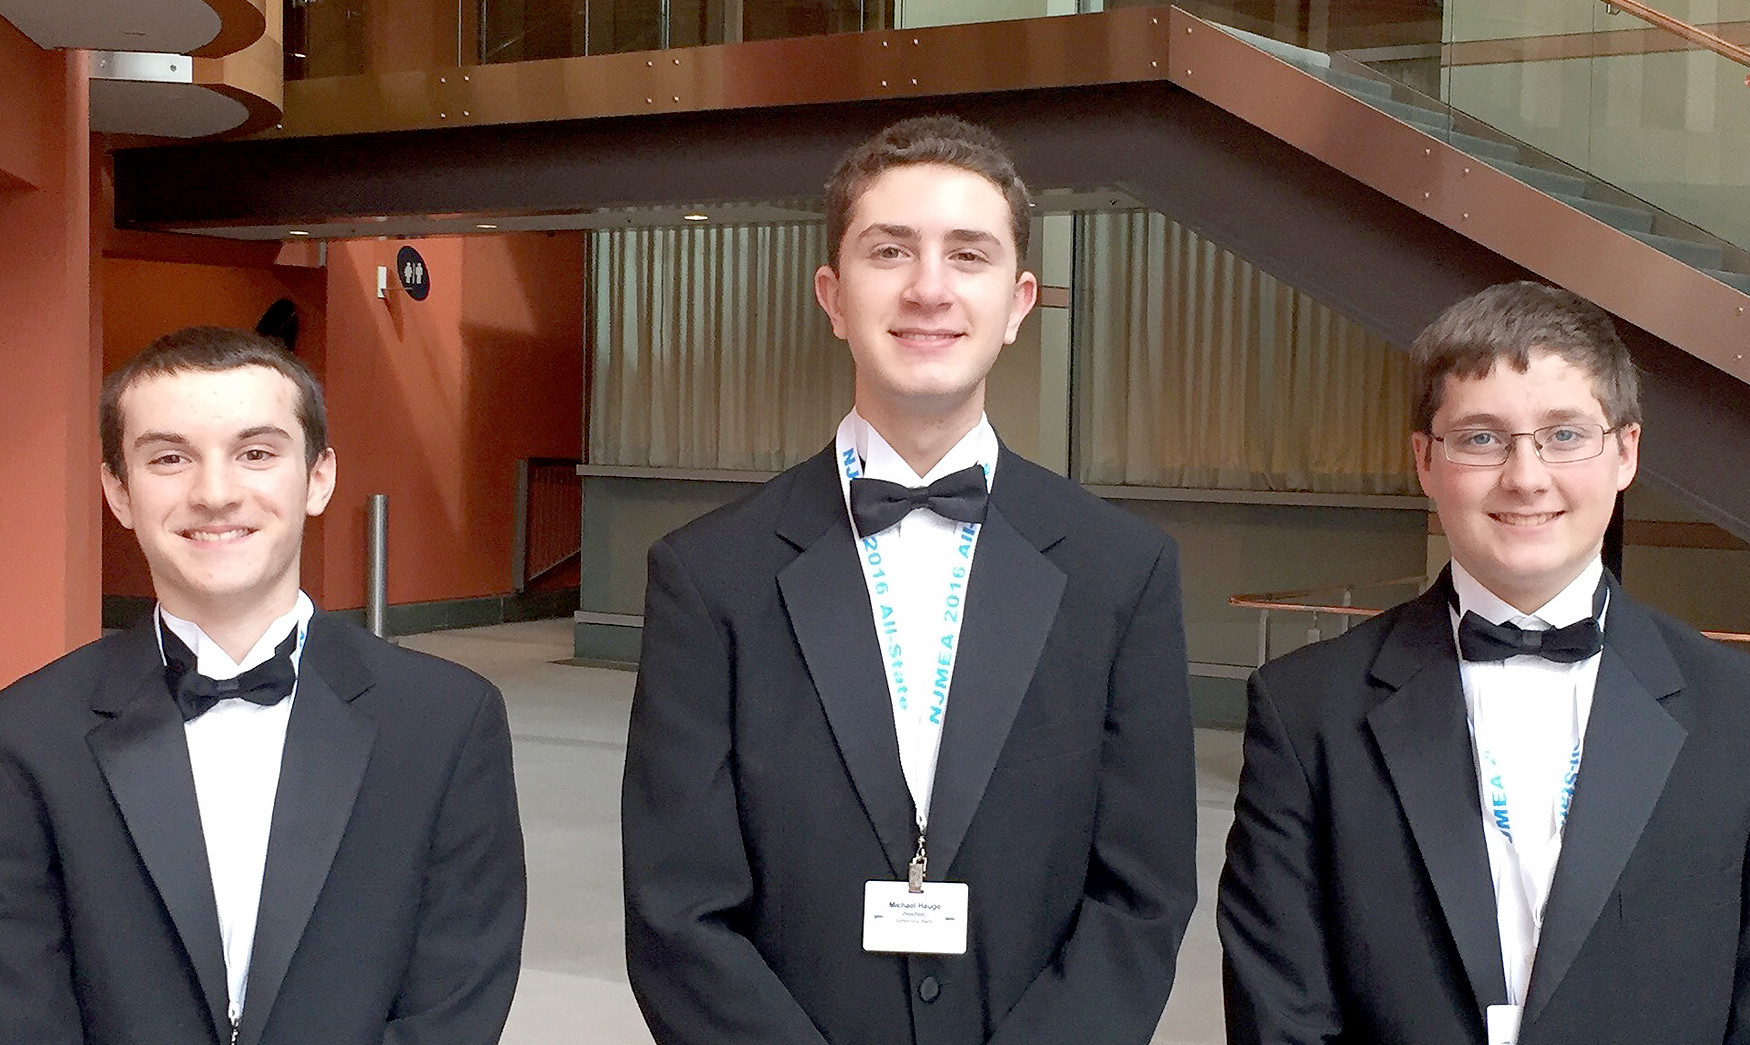 (above, l-r) Readying for their performance are Matthew Schiff, Contrabass Clarinet - All-State Symphonic Band; Michael Hauge, Bb Clarinet and Eb Clarinet - All-State Symphonic Band, and Dale Beyert, Trumpet - All-State Wind Ensemble and Orchestra.